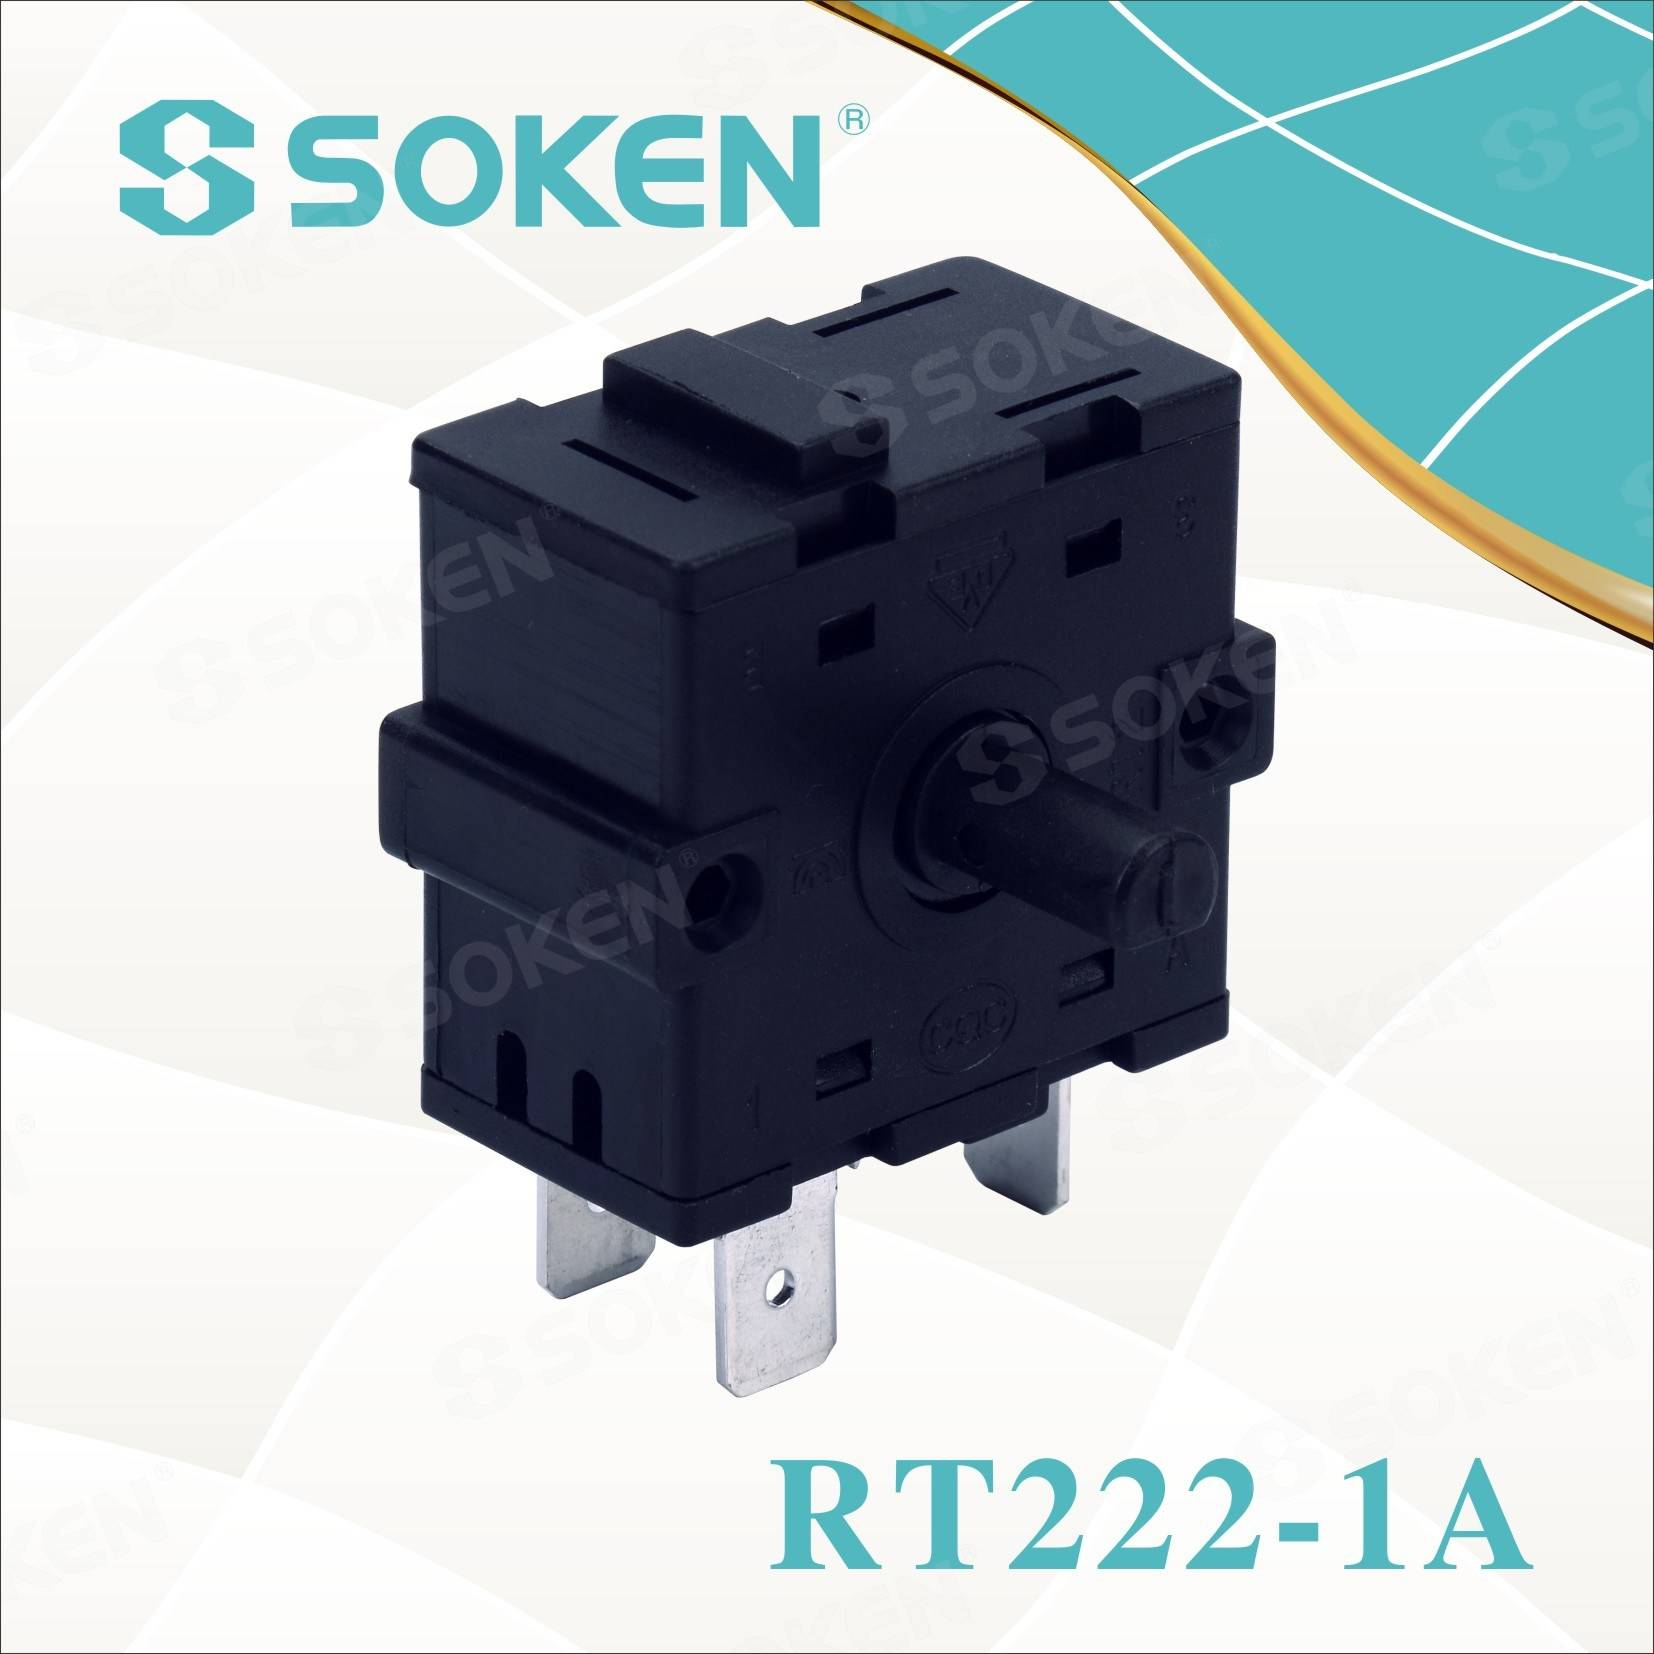 Short Lead Time for Amber Signal Light -